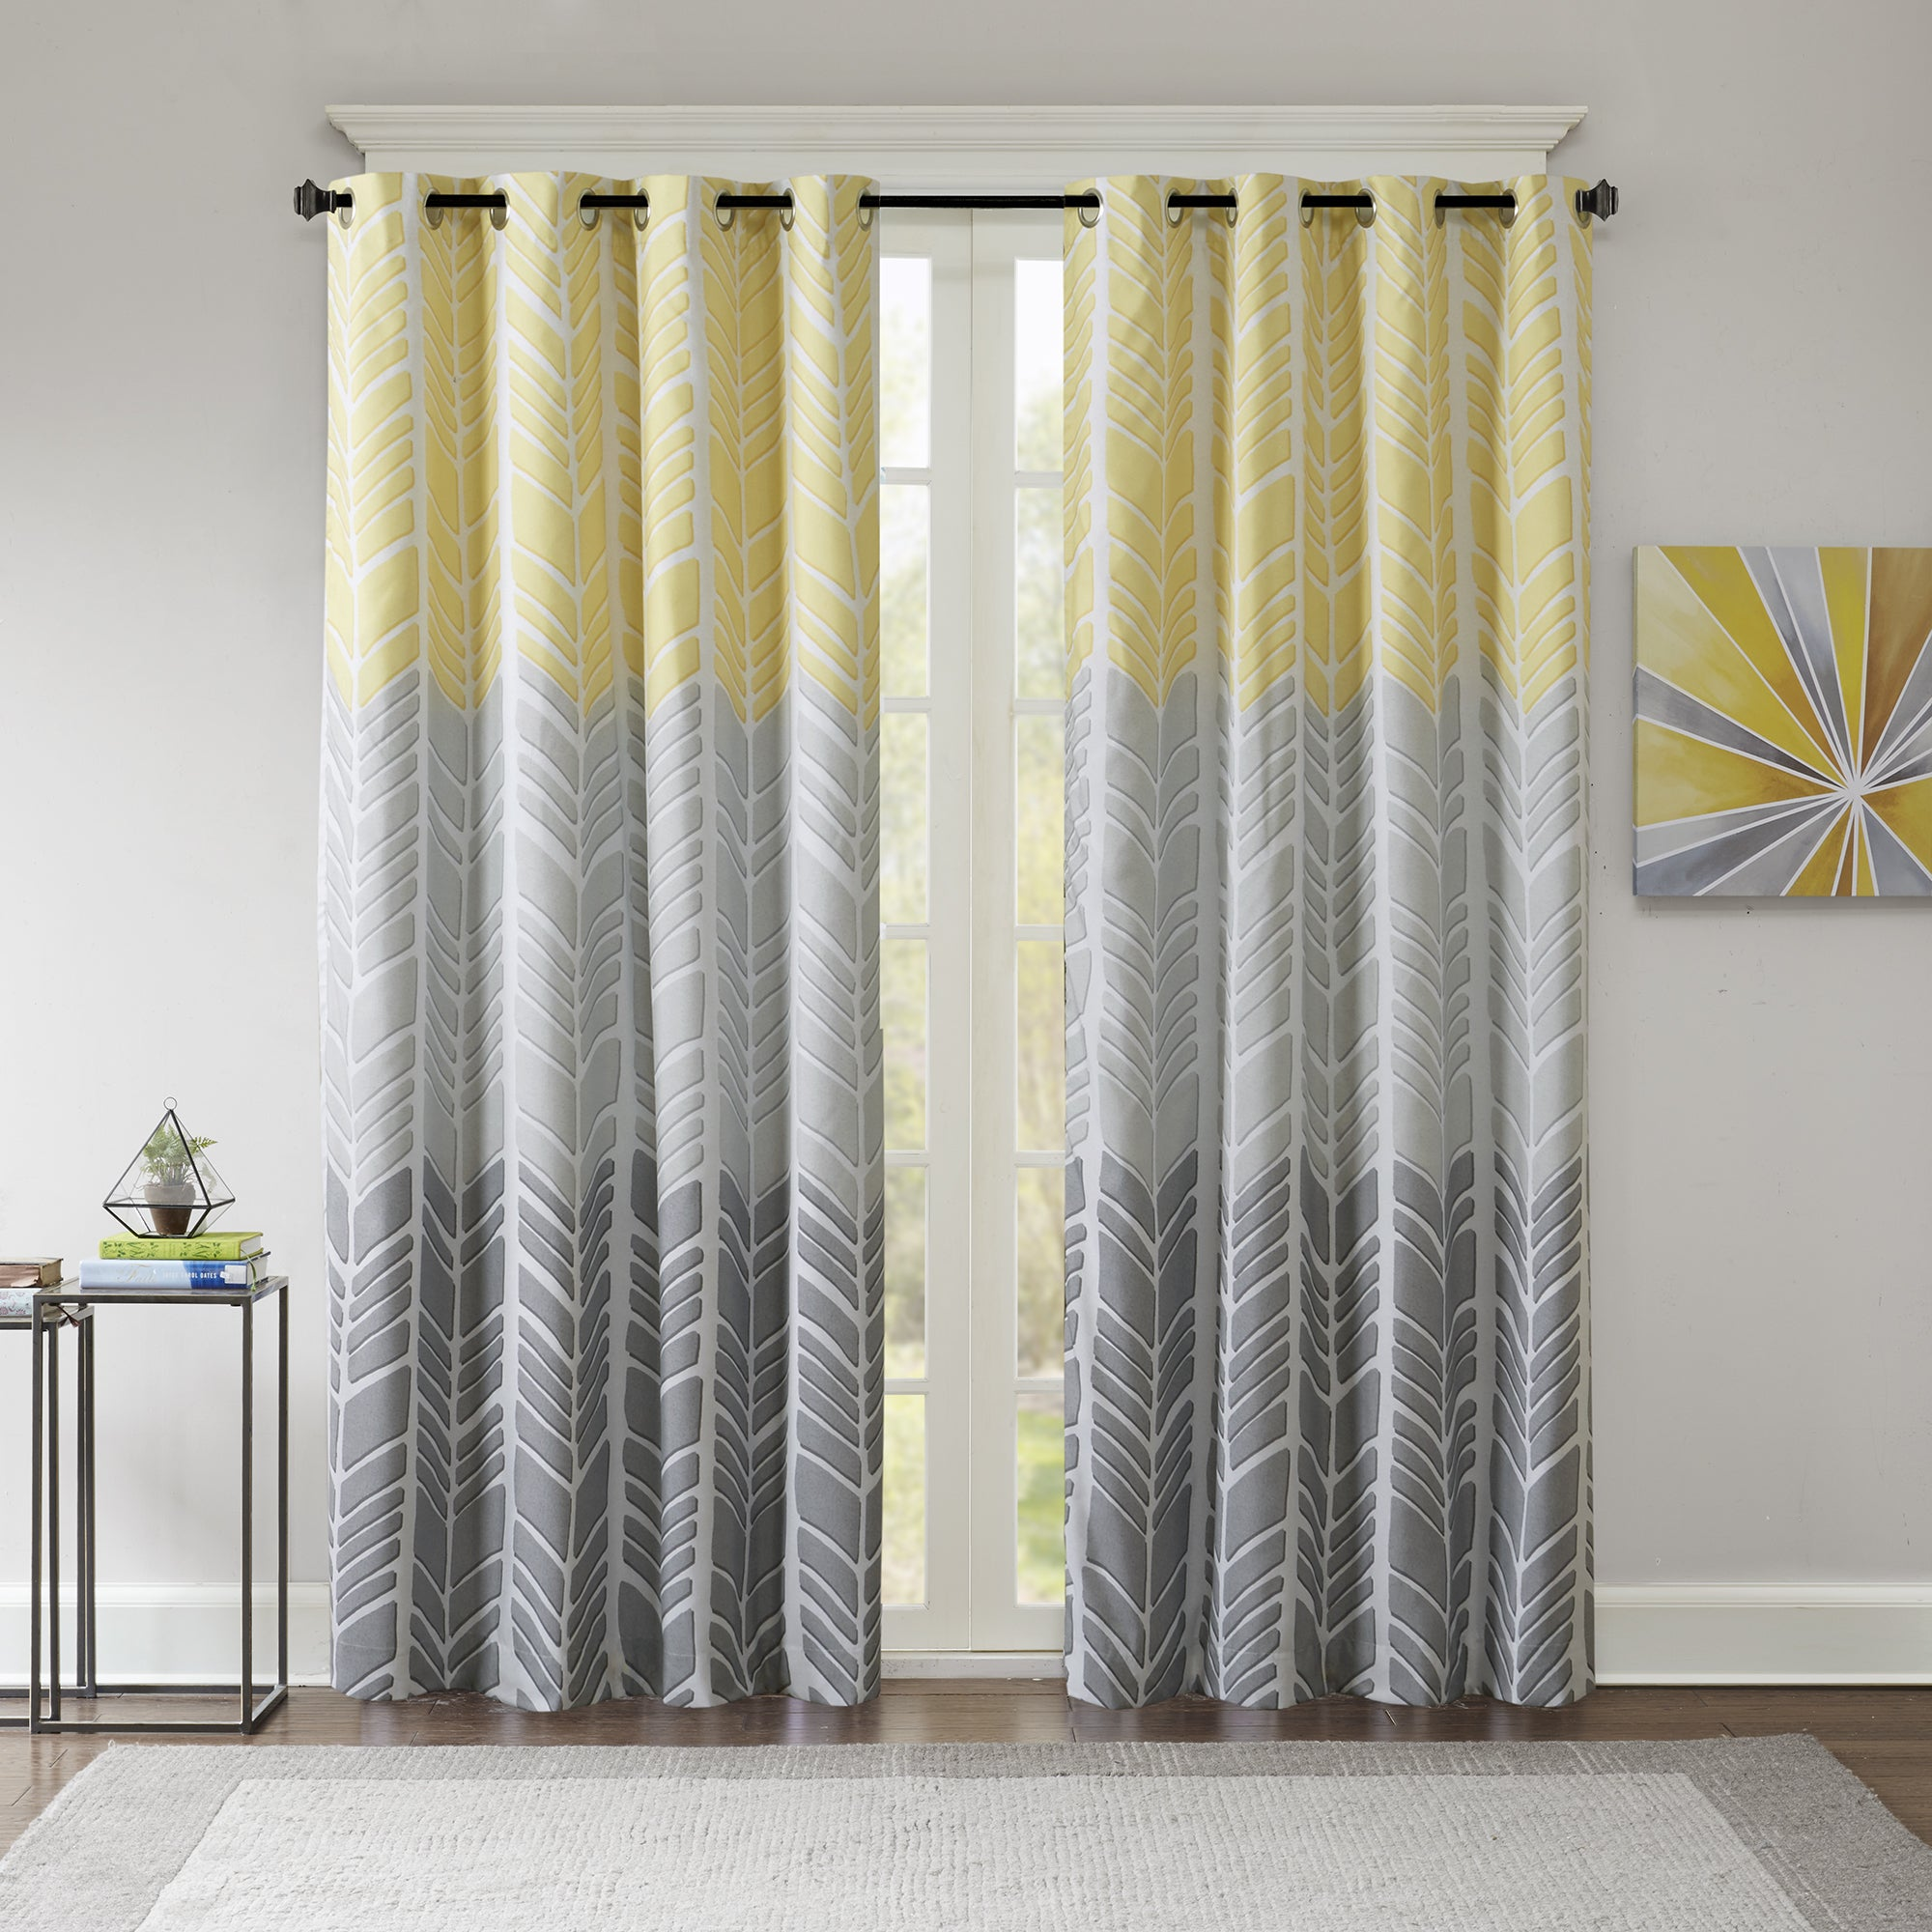 curtain ip panel curtains walmart eclipse blackout com madison window